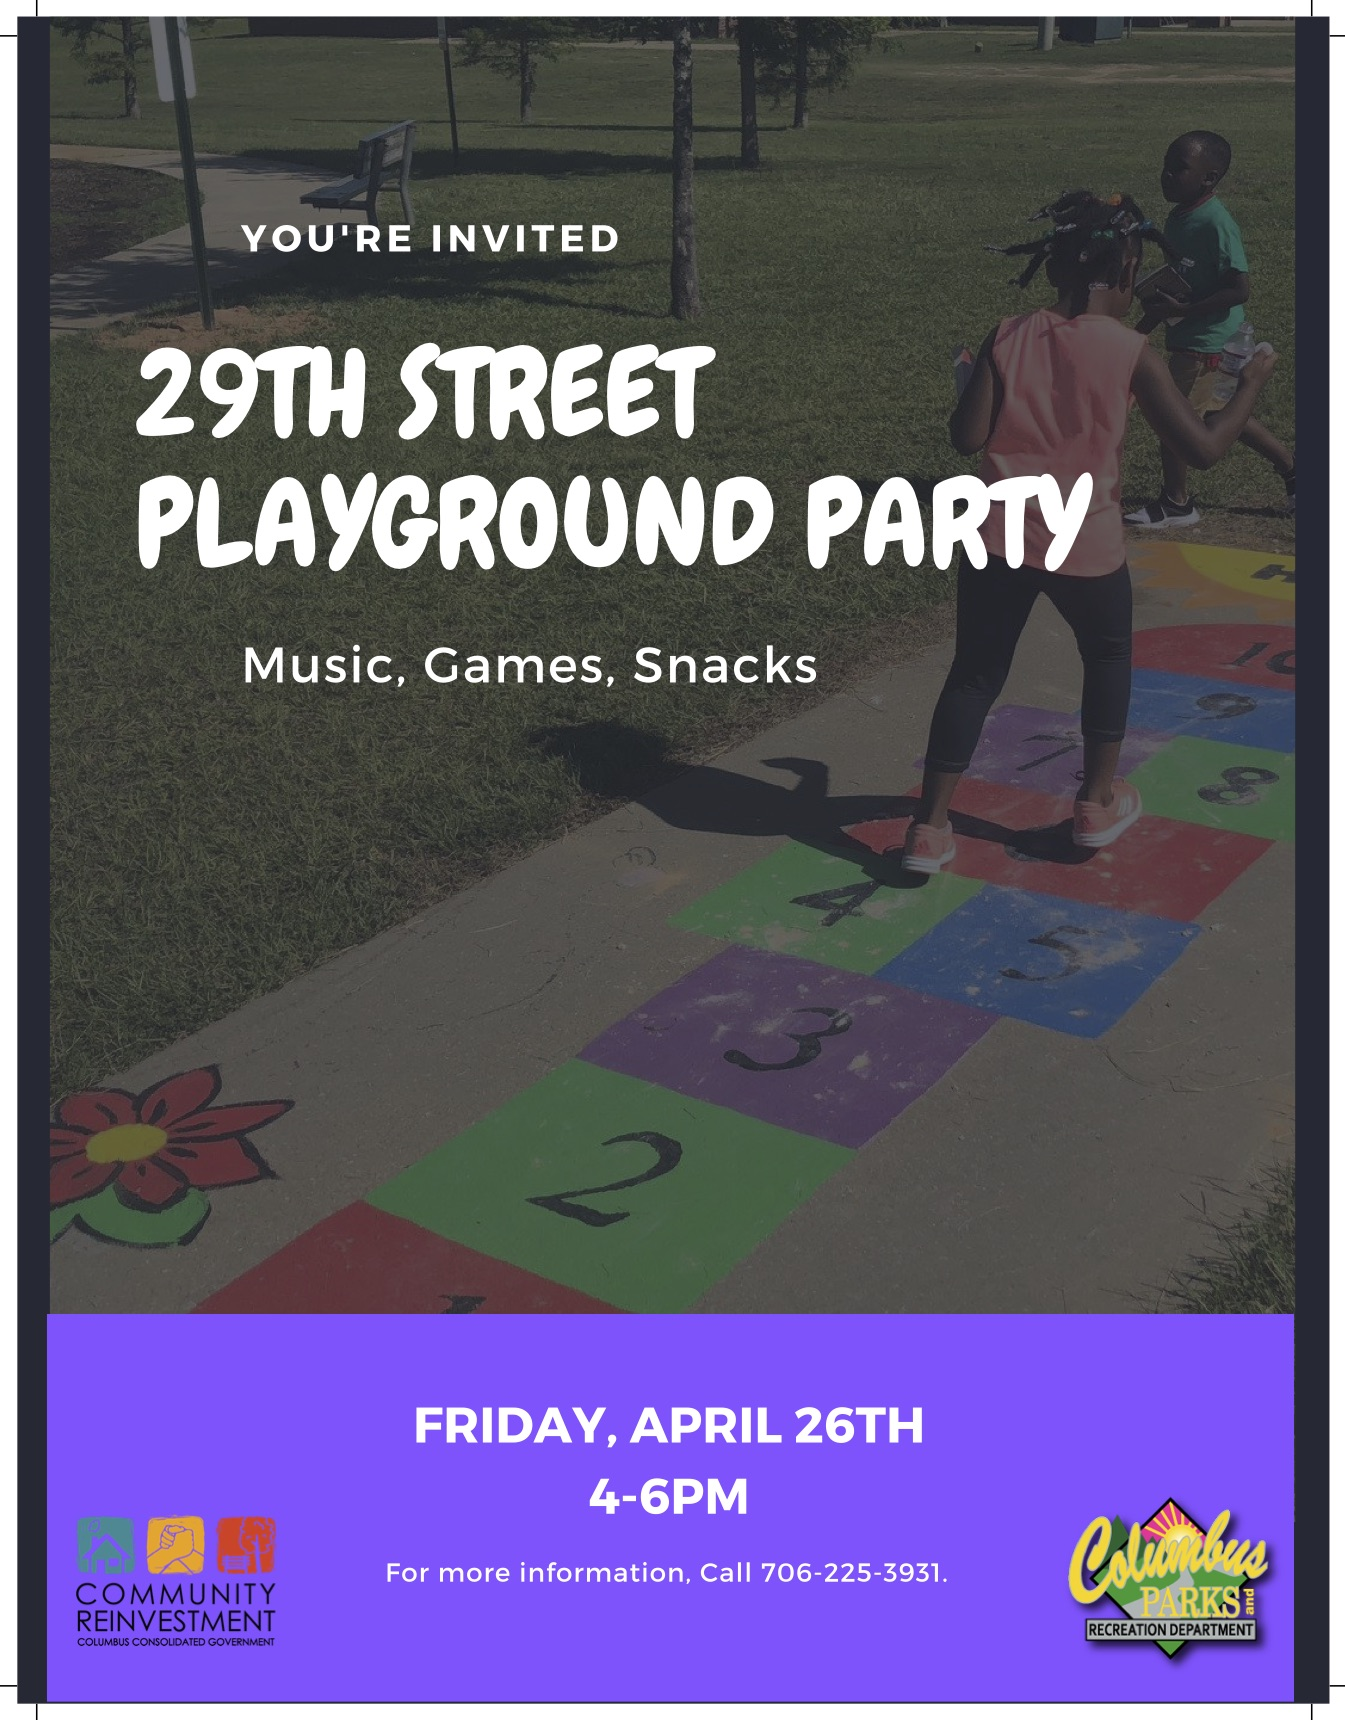 29th Street Playground Party.jpg